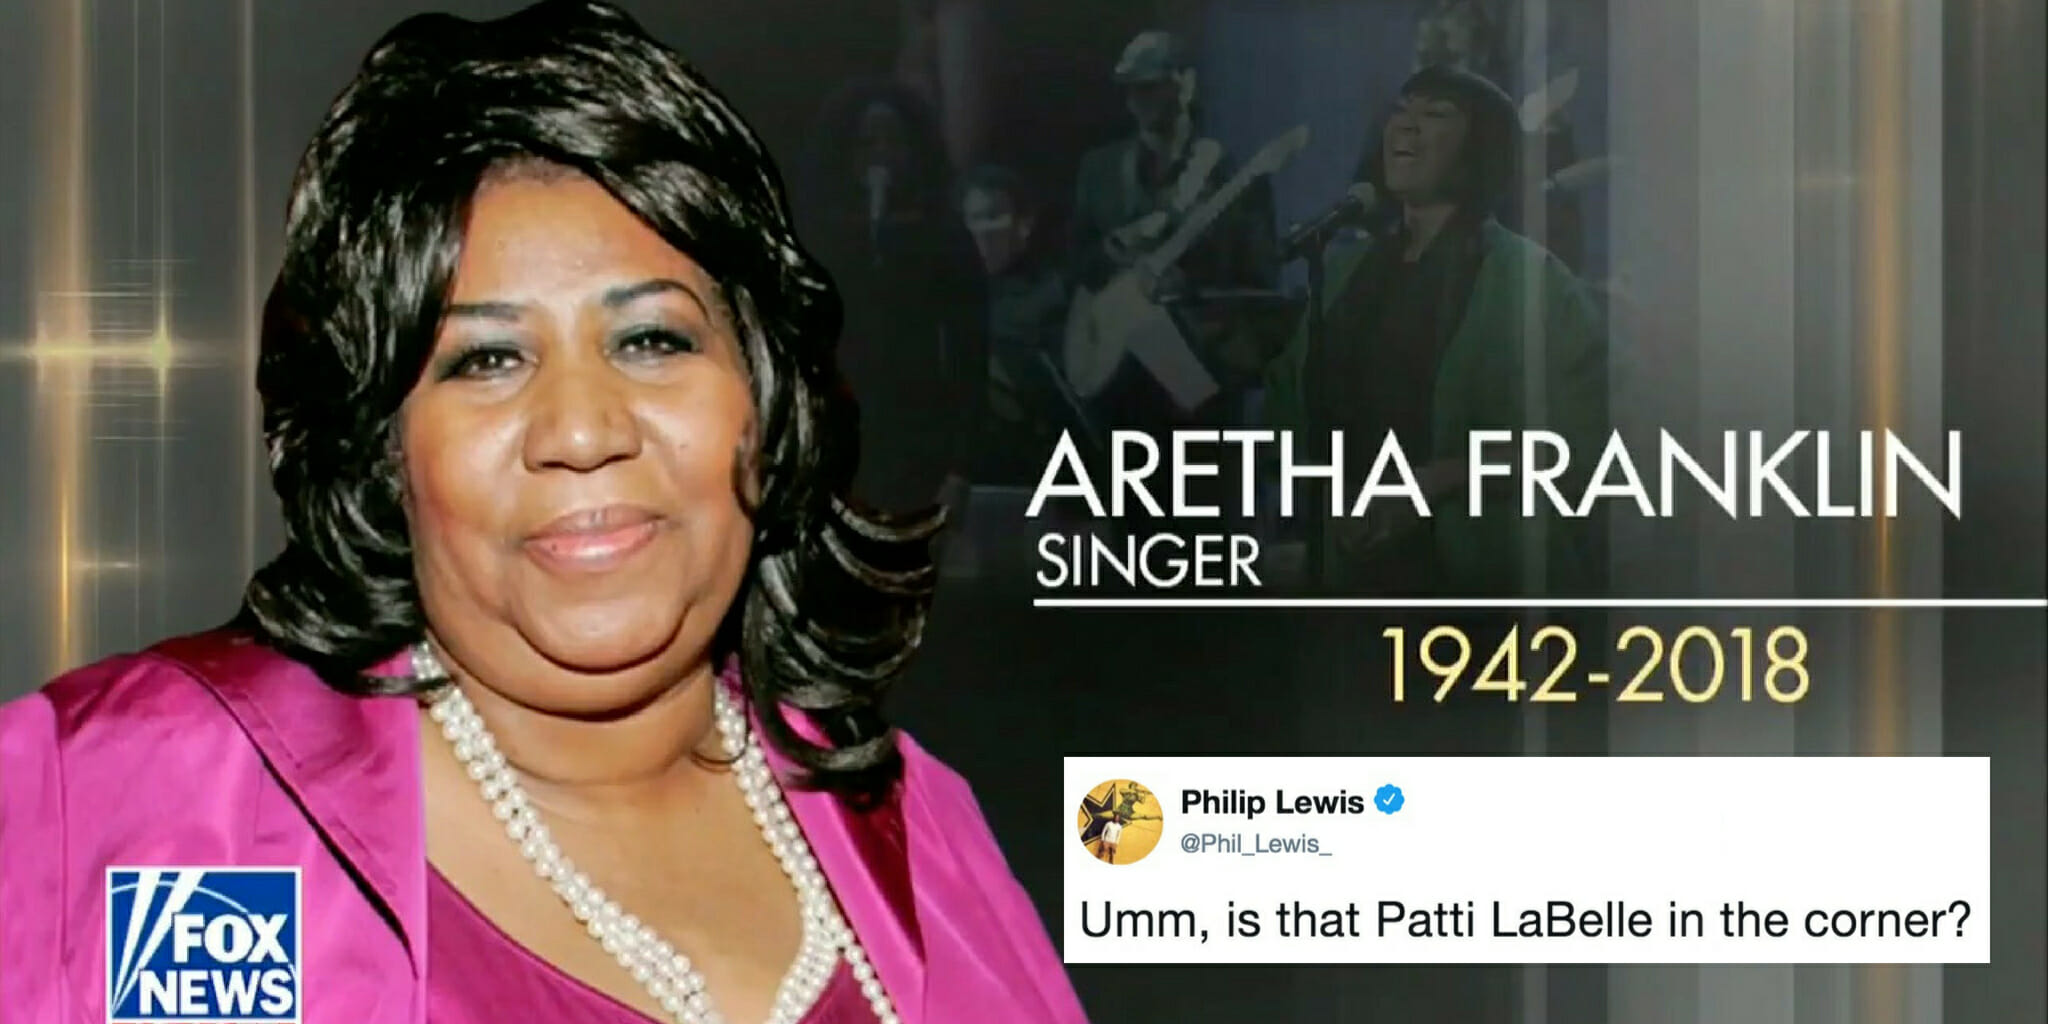 Fox News mistakes Patti LaBelle for Aretha Franklin.